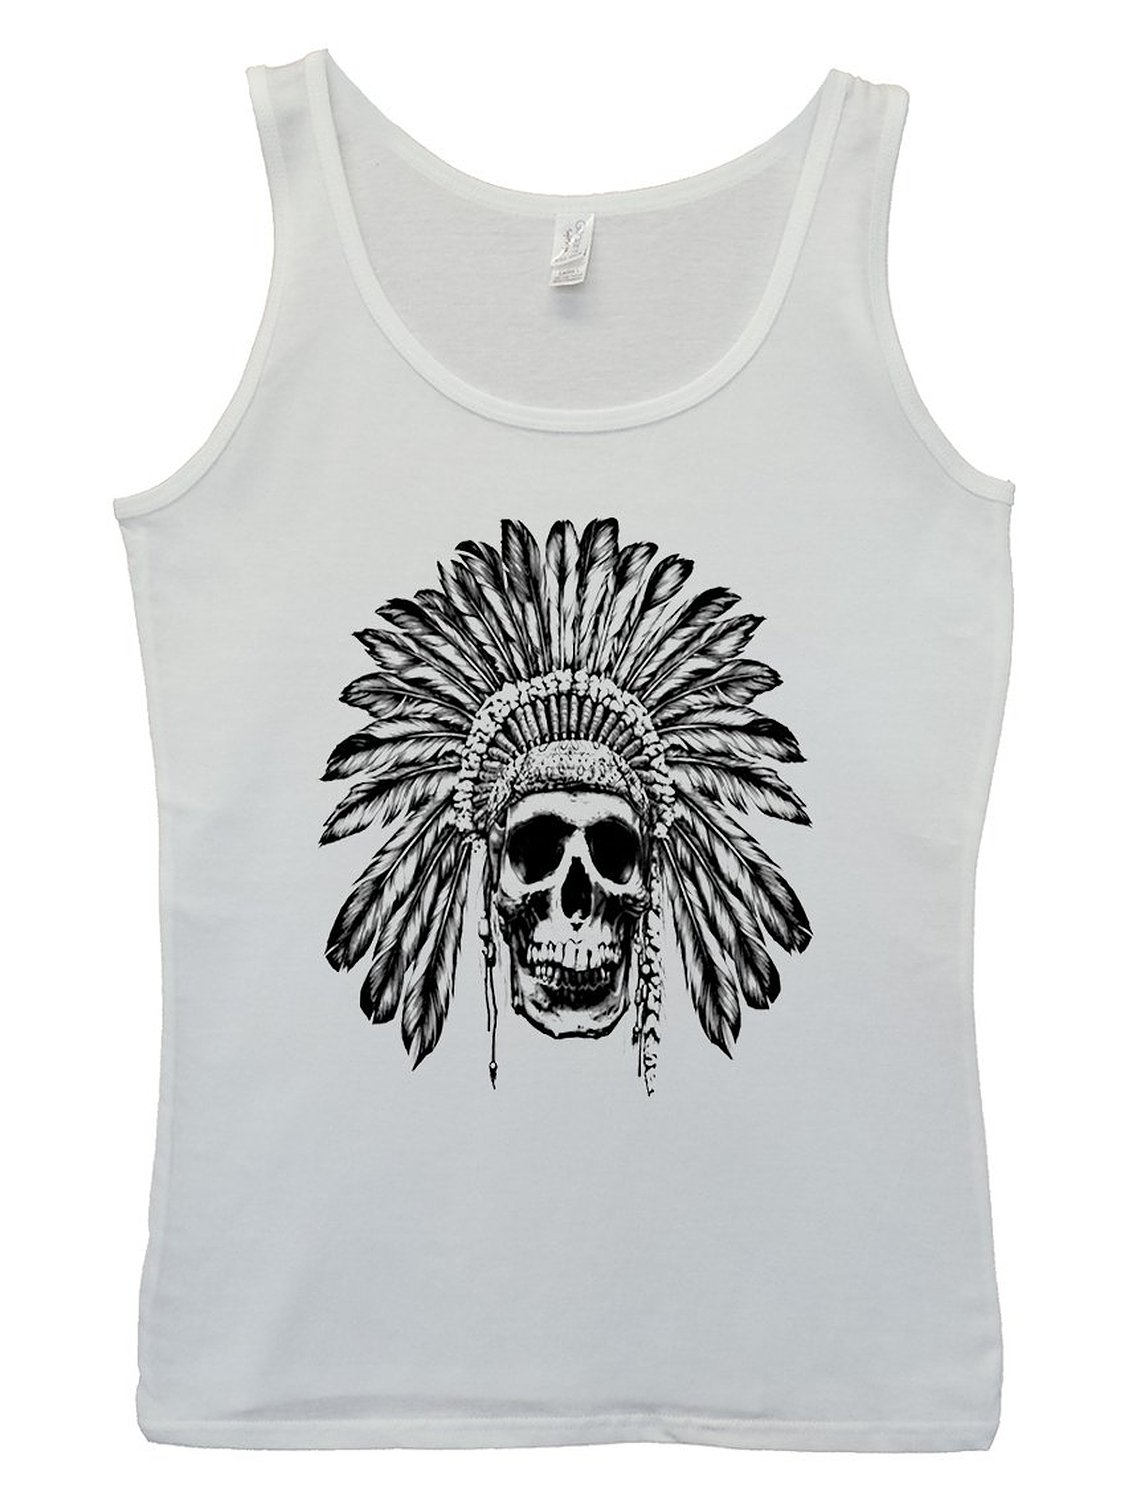 Amazon.com: skull indian chief native festival white women tank top vest: clothing